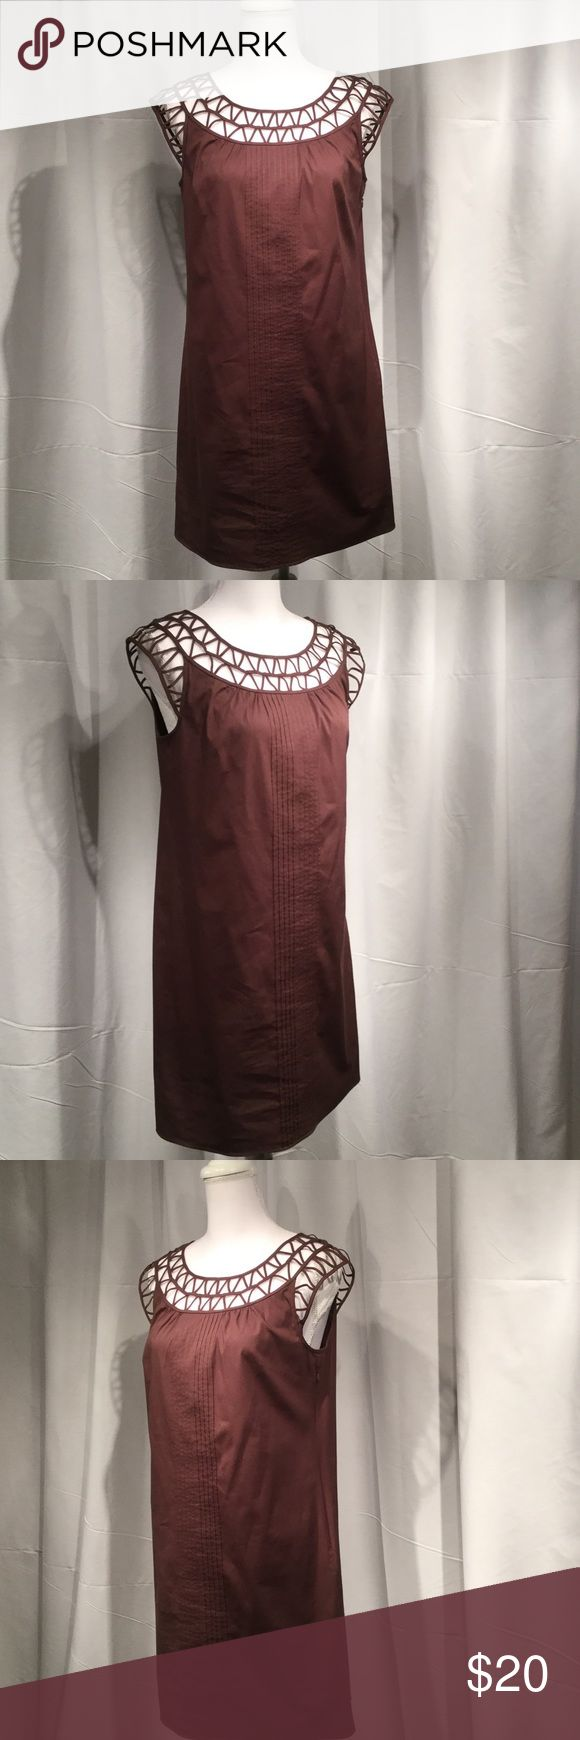 "Cap Sleeve Brown Sack Dress with lace collar Perfect "" Weekend Dress"" by Ann Taylor Very comfortable Sack Dress with lace collar and cap sleeves.  Very comfortable, very light weight.  Perfect for a summer day Ann Taylor Dresses Midi"